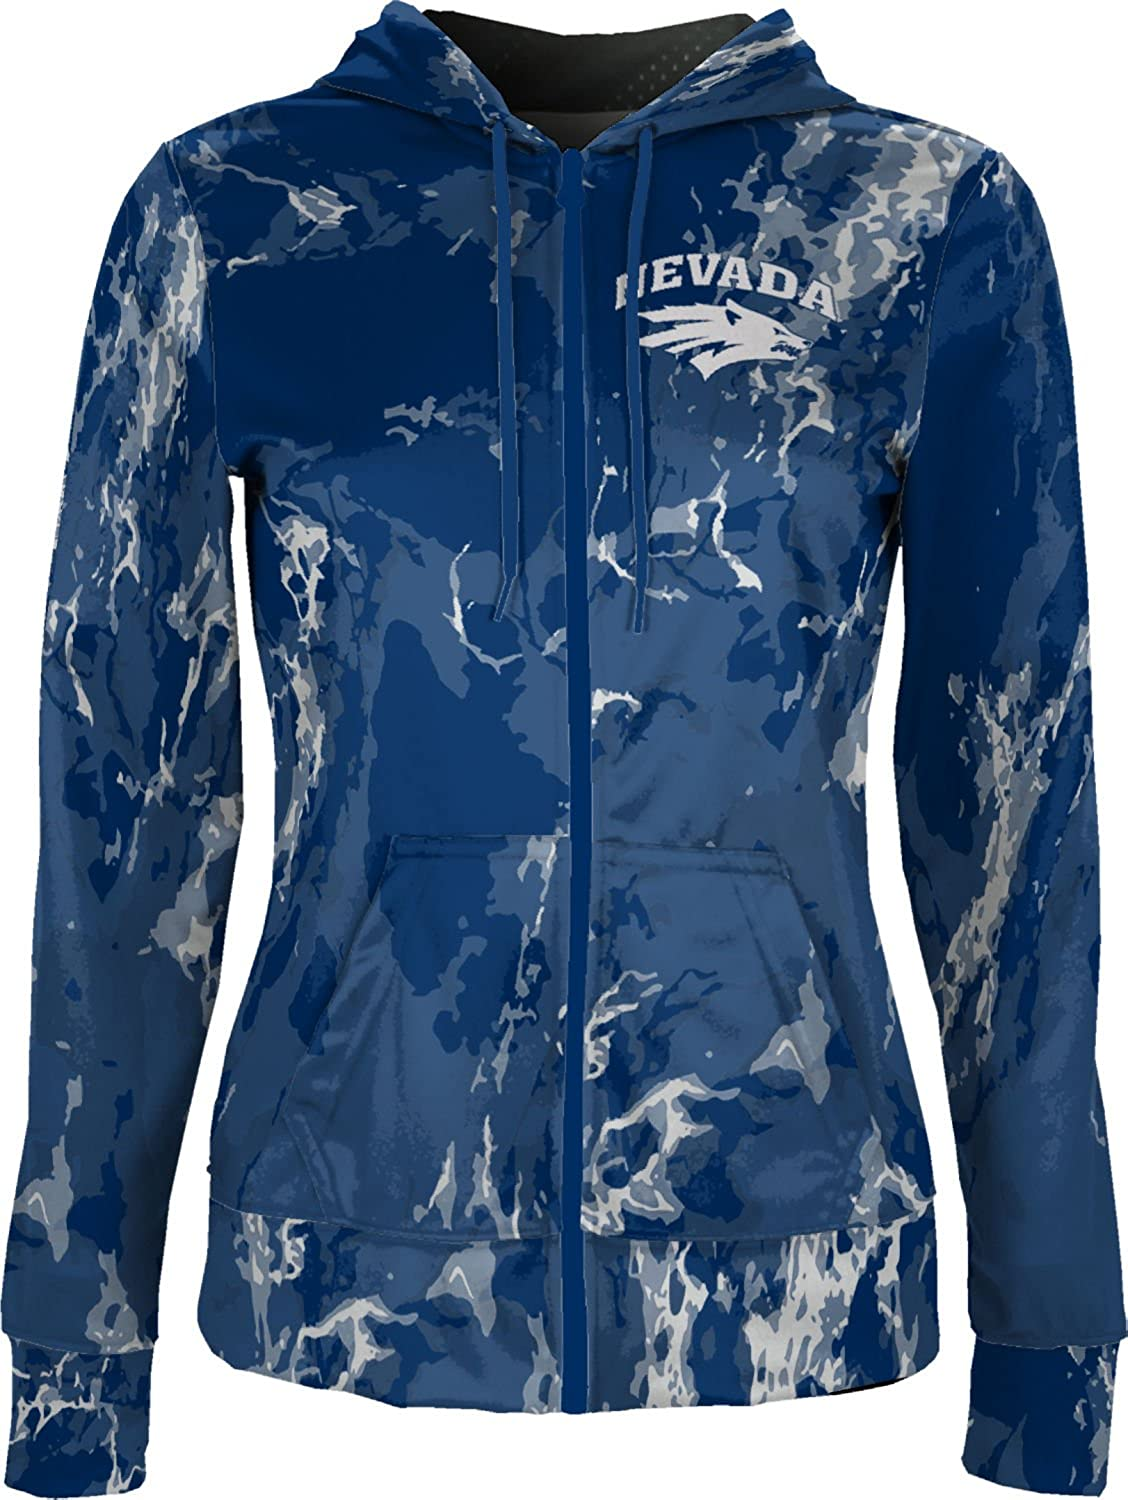 School Spirit Sweatshirt Marble ProSphere University of Nevada Girls Zipper Hoodie